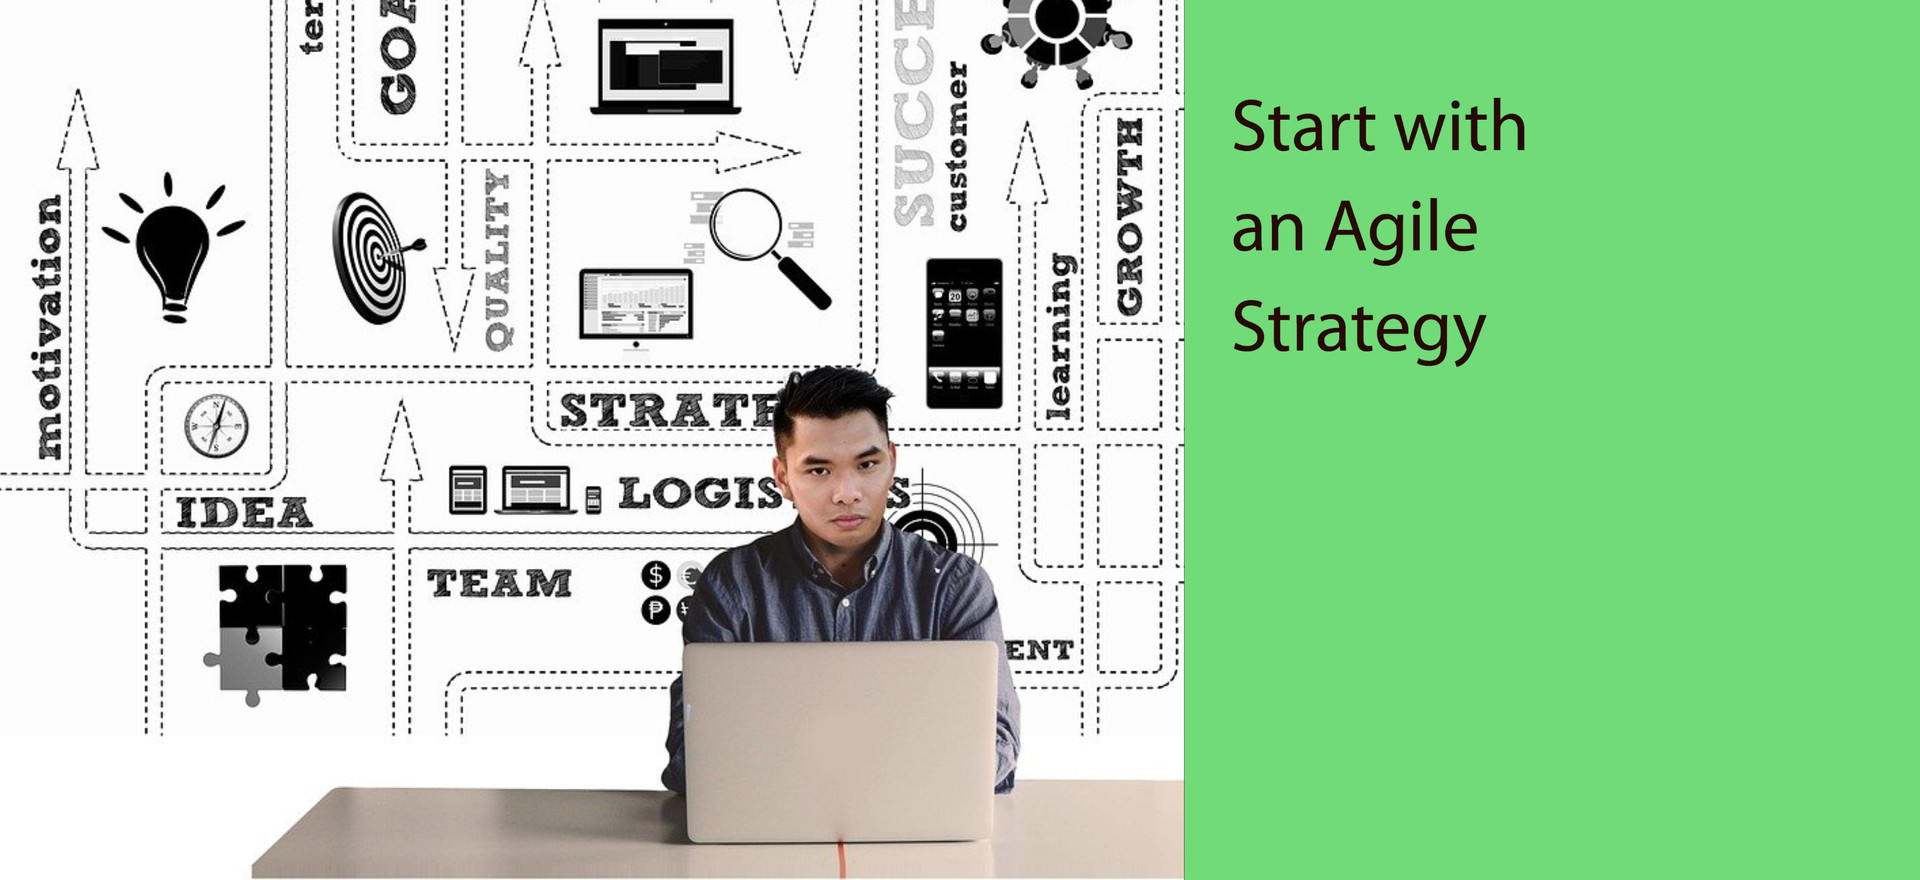 Start with an Agile Strategy